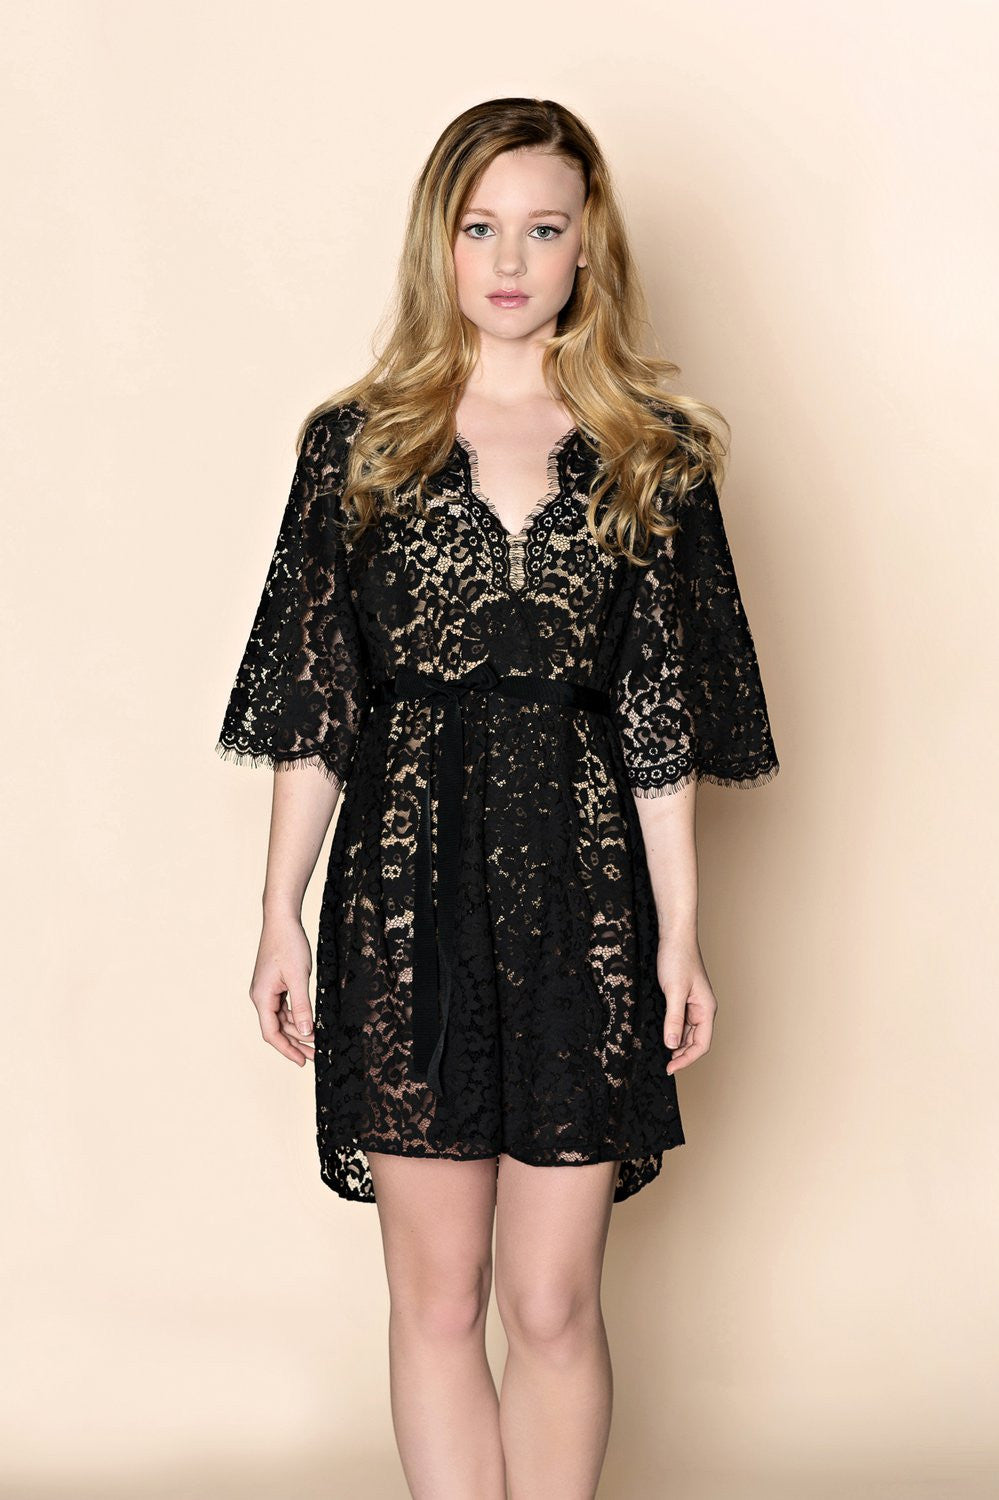 ELIZABETH SCALLOP COTTON LACE ROBE IN BOUDOIR BLACK - STYLE 120